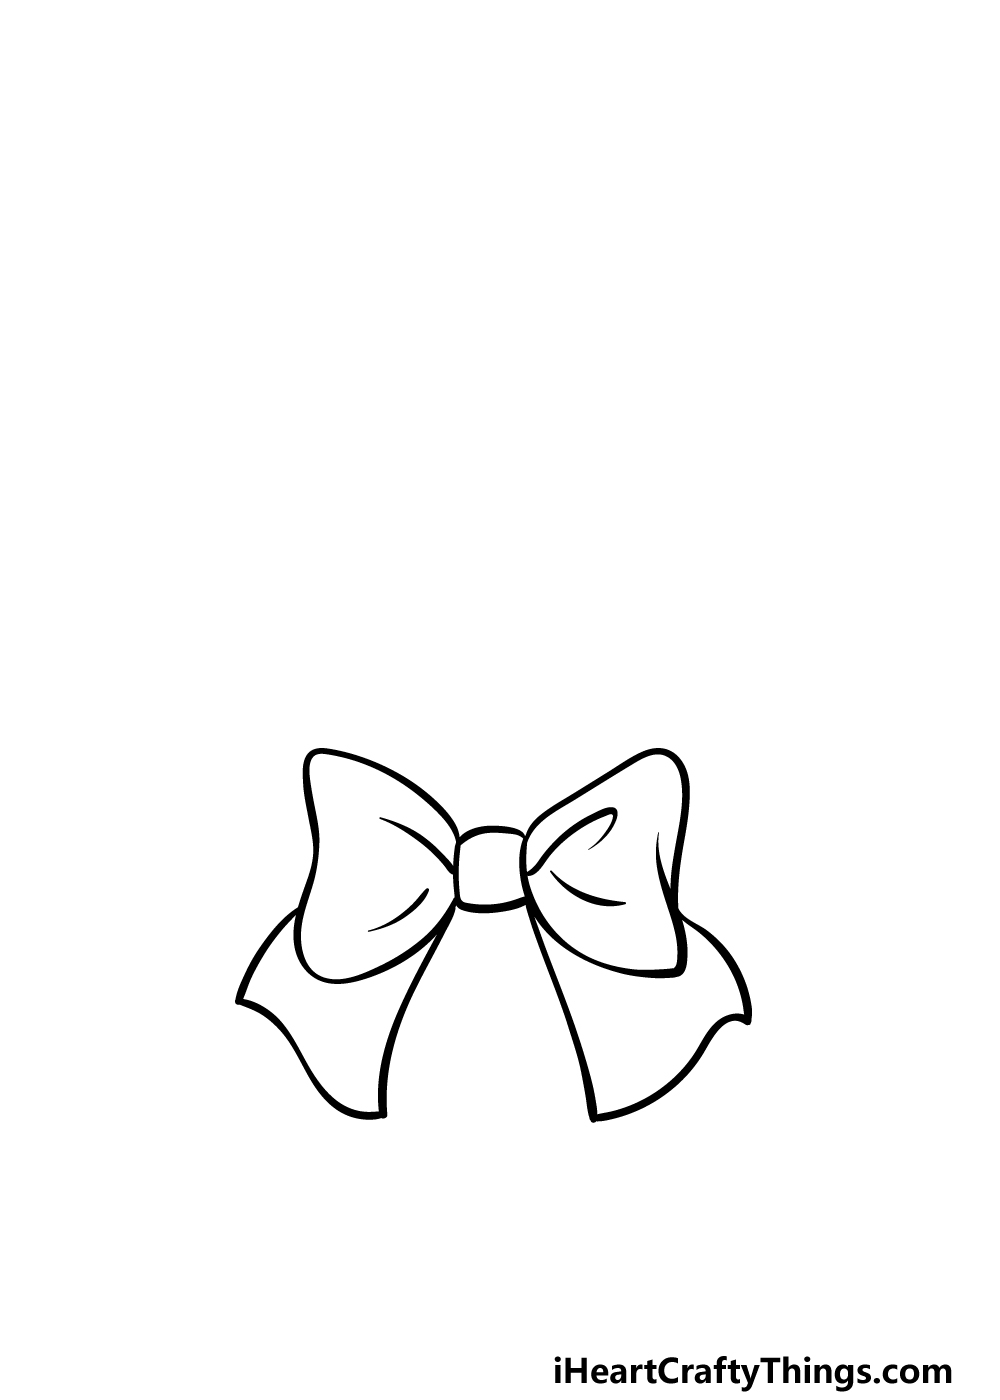 drawing a wreath step 1